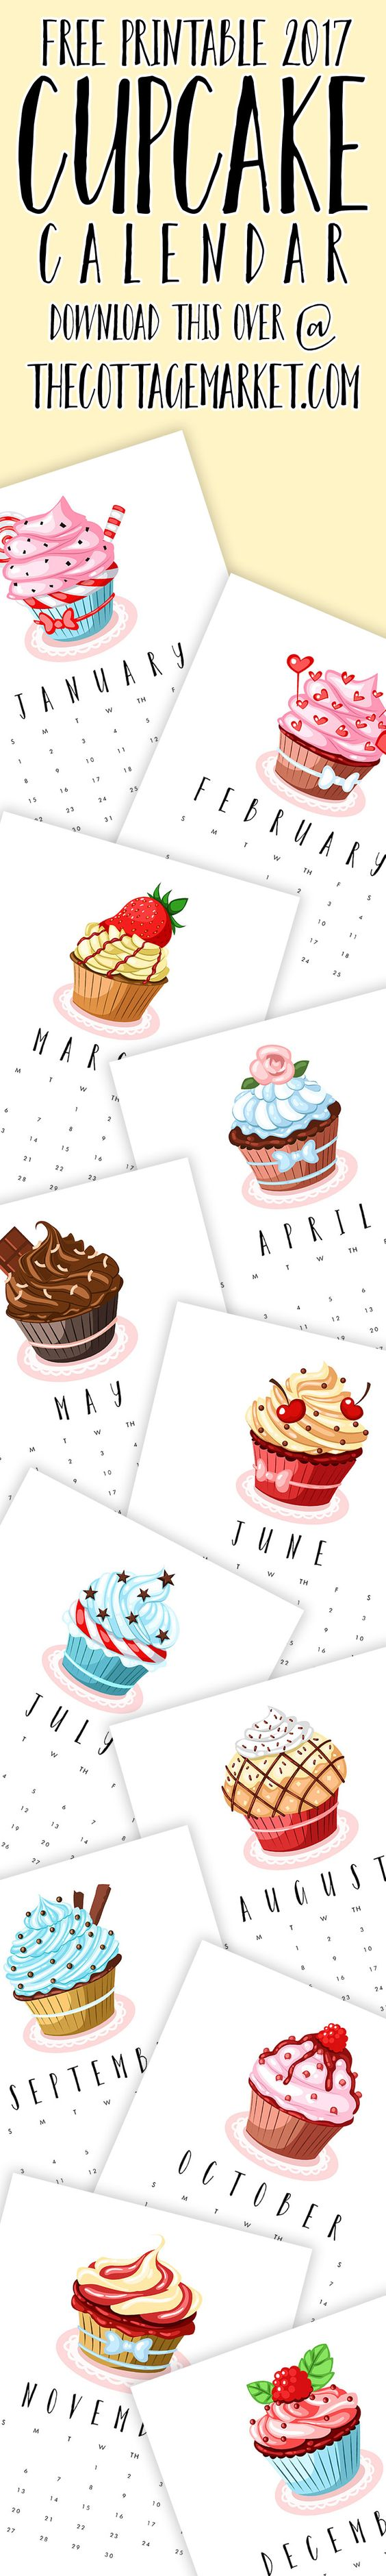 Free Printable 2017 Cupcake Calendar via The Cottage Market...Perfect to Celebrate Baking Week!